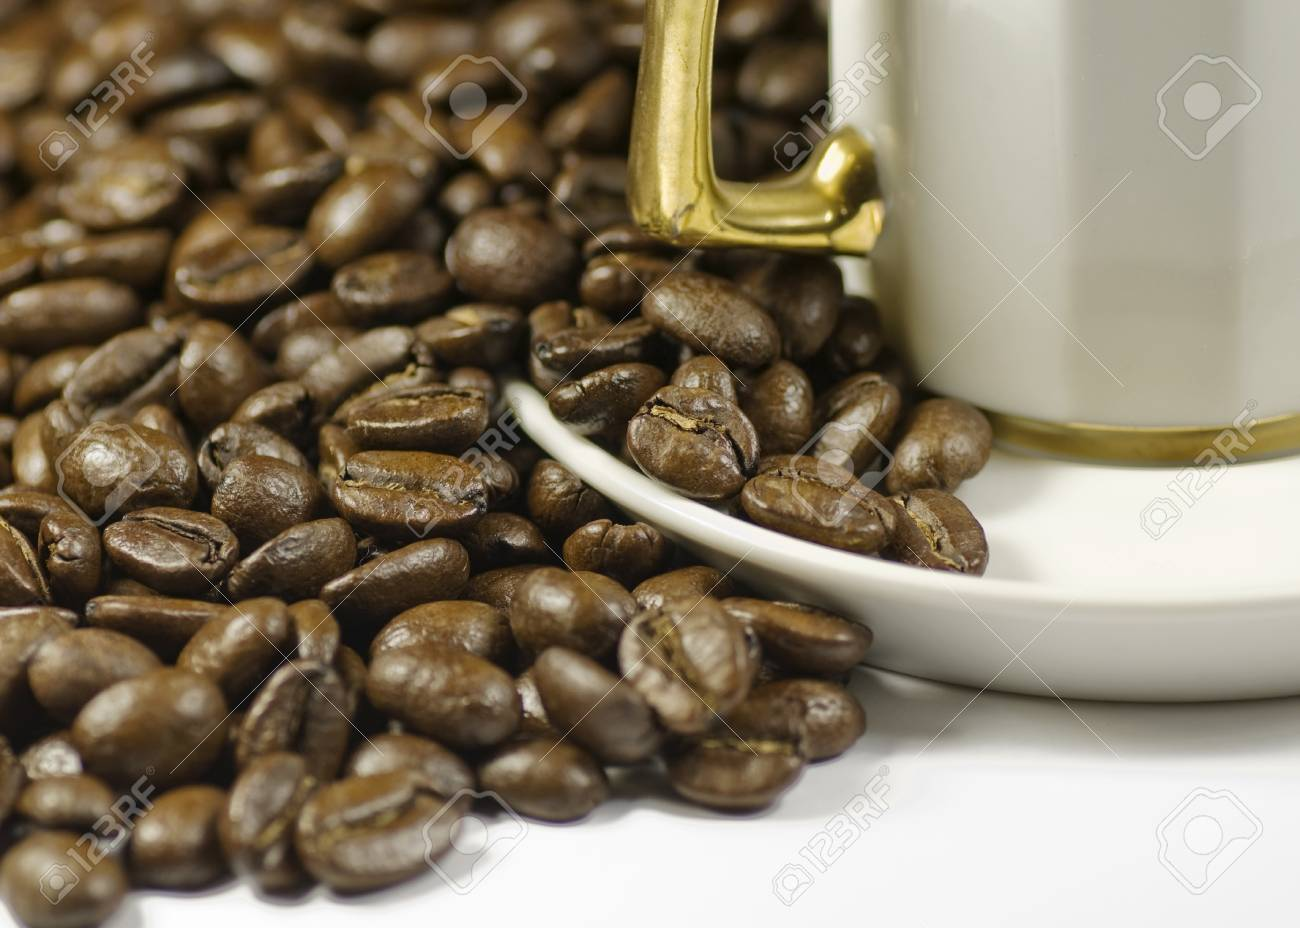 coffe beans by gold handle cup with handle Stock Photo - 8278848